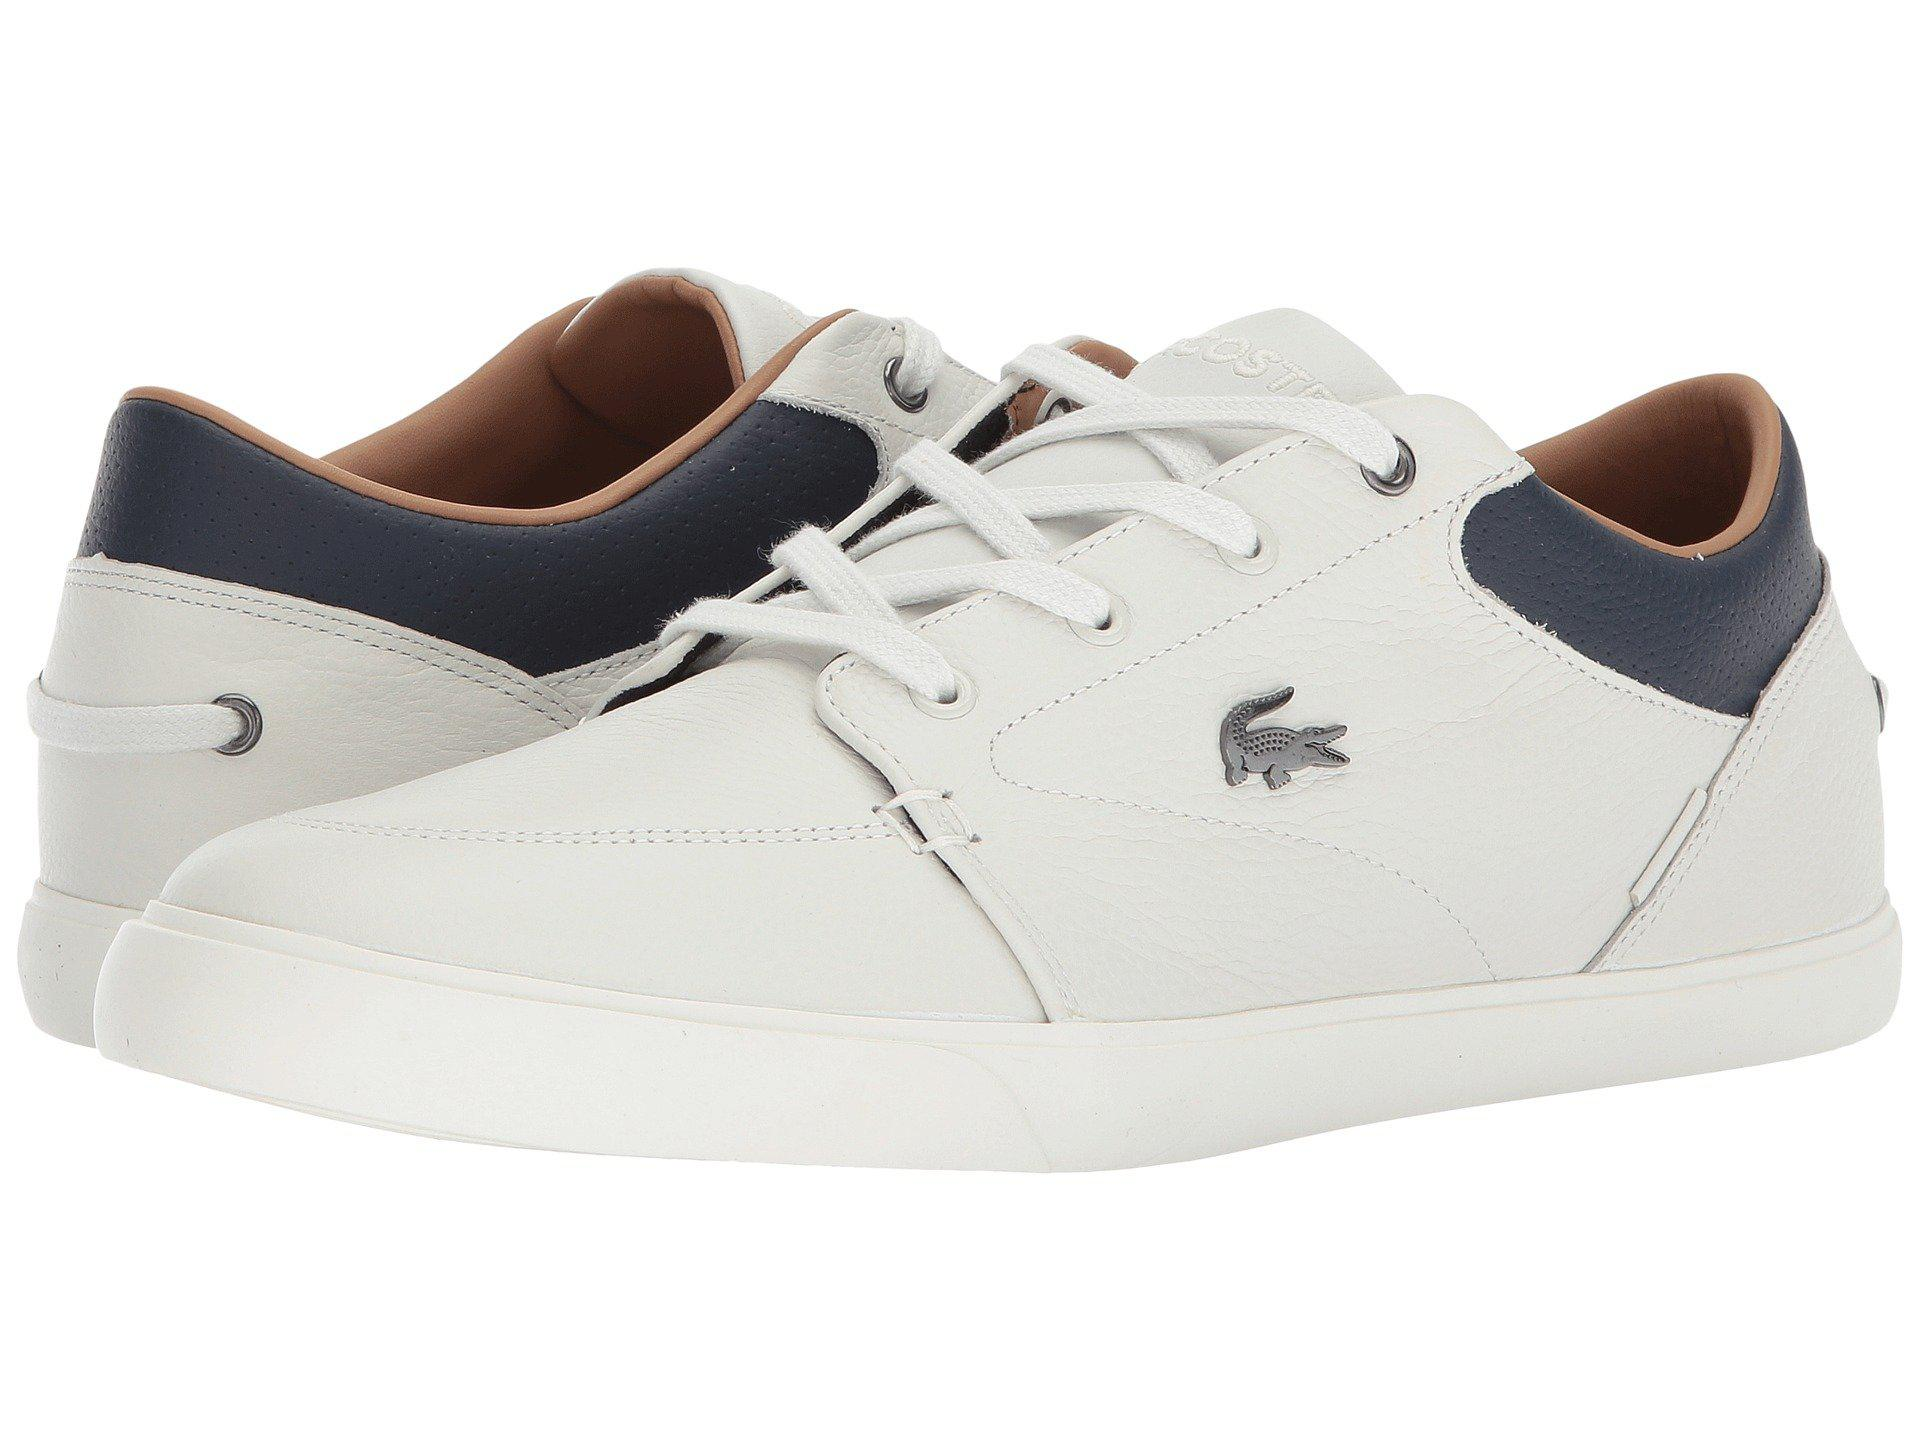 21f6263ea Lyst - Lacoste Bayliss 118 1 (off-white navy) Men s Shoes in White ...